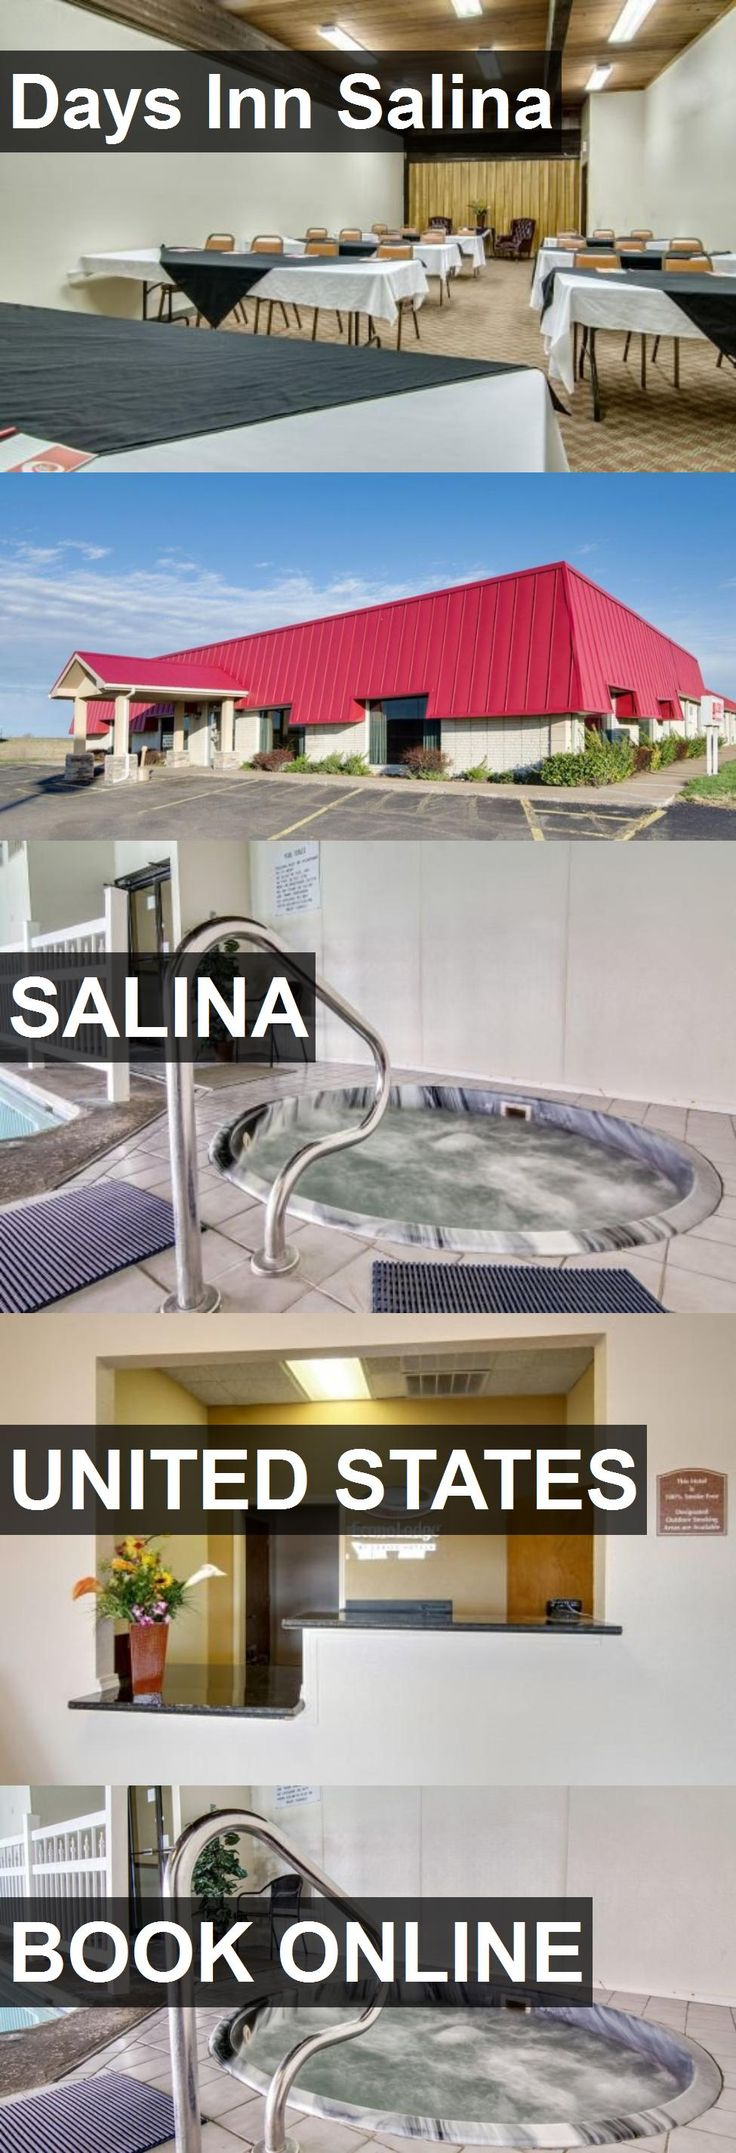 Hotel Days Inn Salina in Salina, United States. For more information, photos, reviews and best prices please follow the link. #UnitedStates #Salina #hotel #travel #vacation